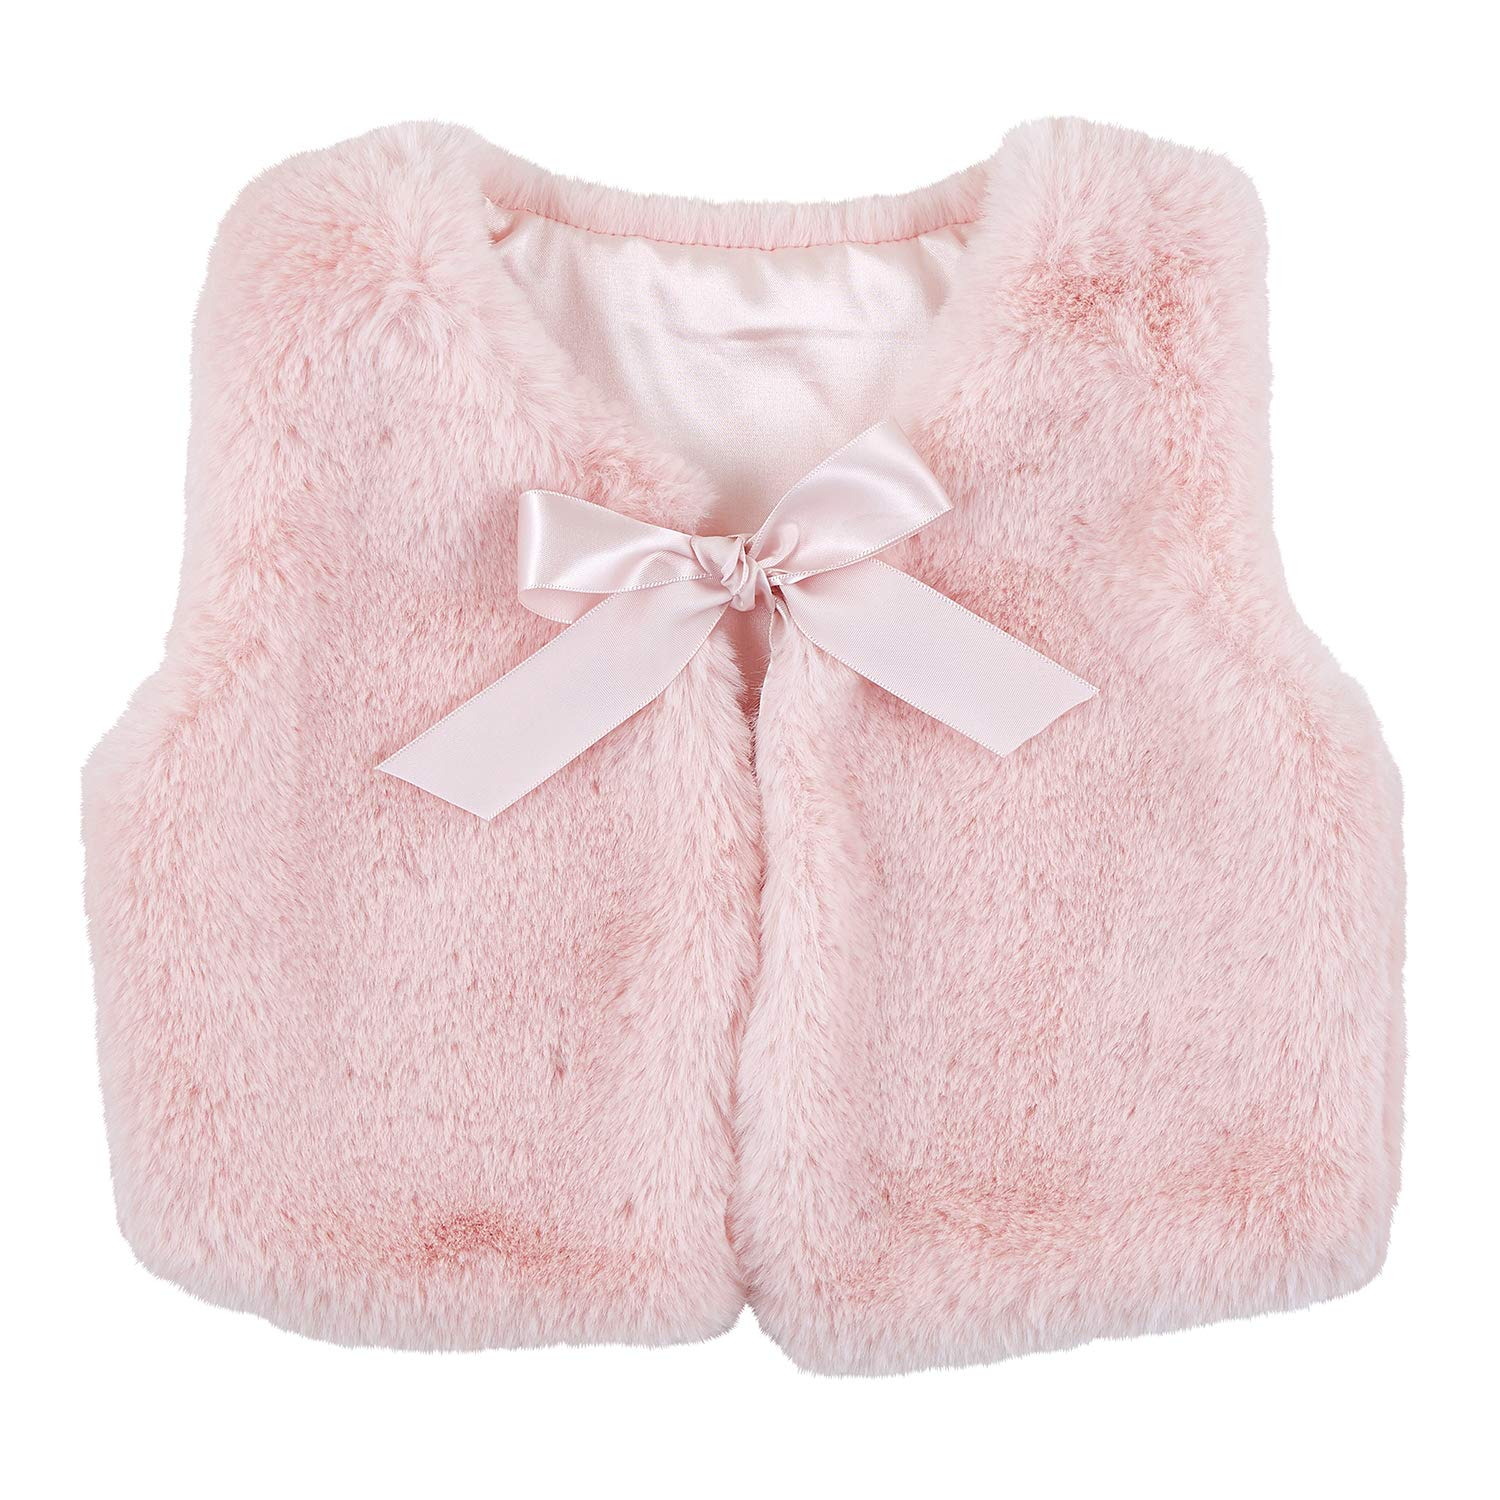 Stephan Baby Faux Fur Collection, My Little Faux Fur Vest, Pink, Fits 6-18 Months : Baby